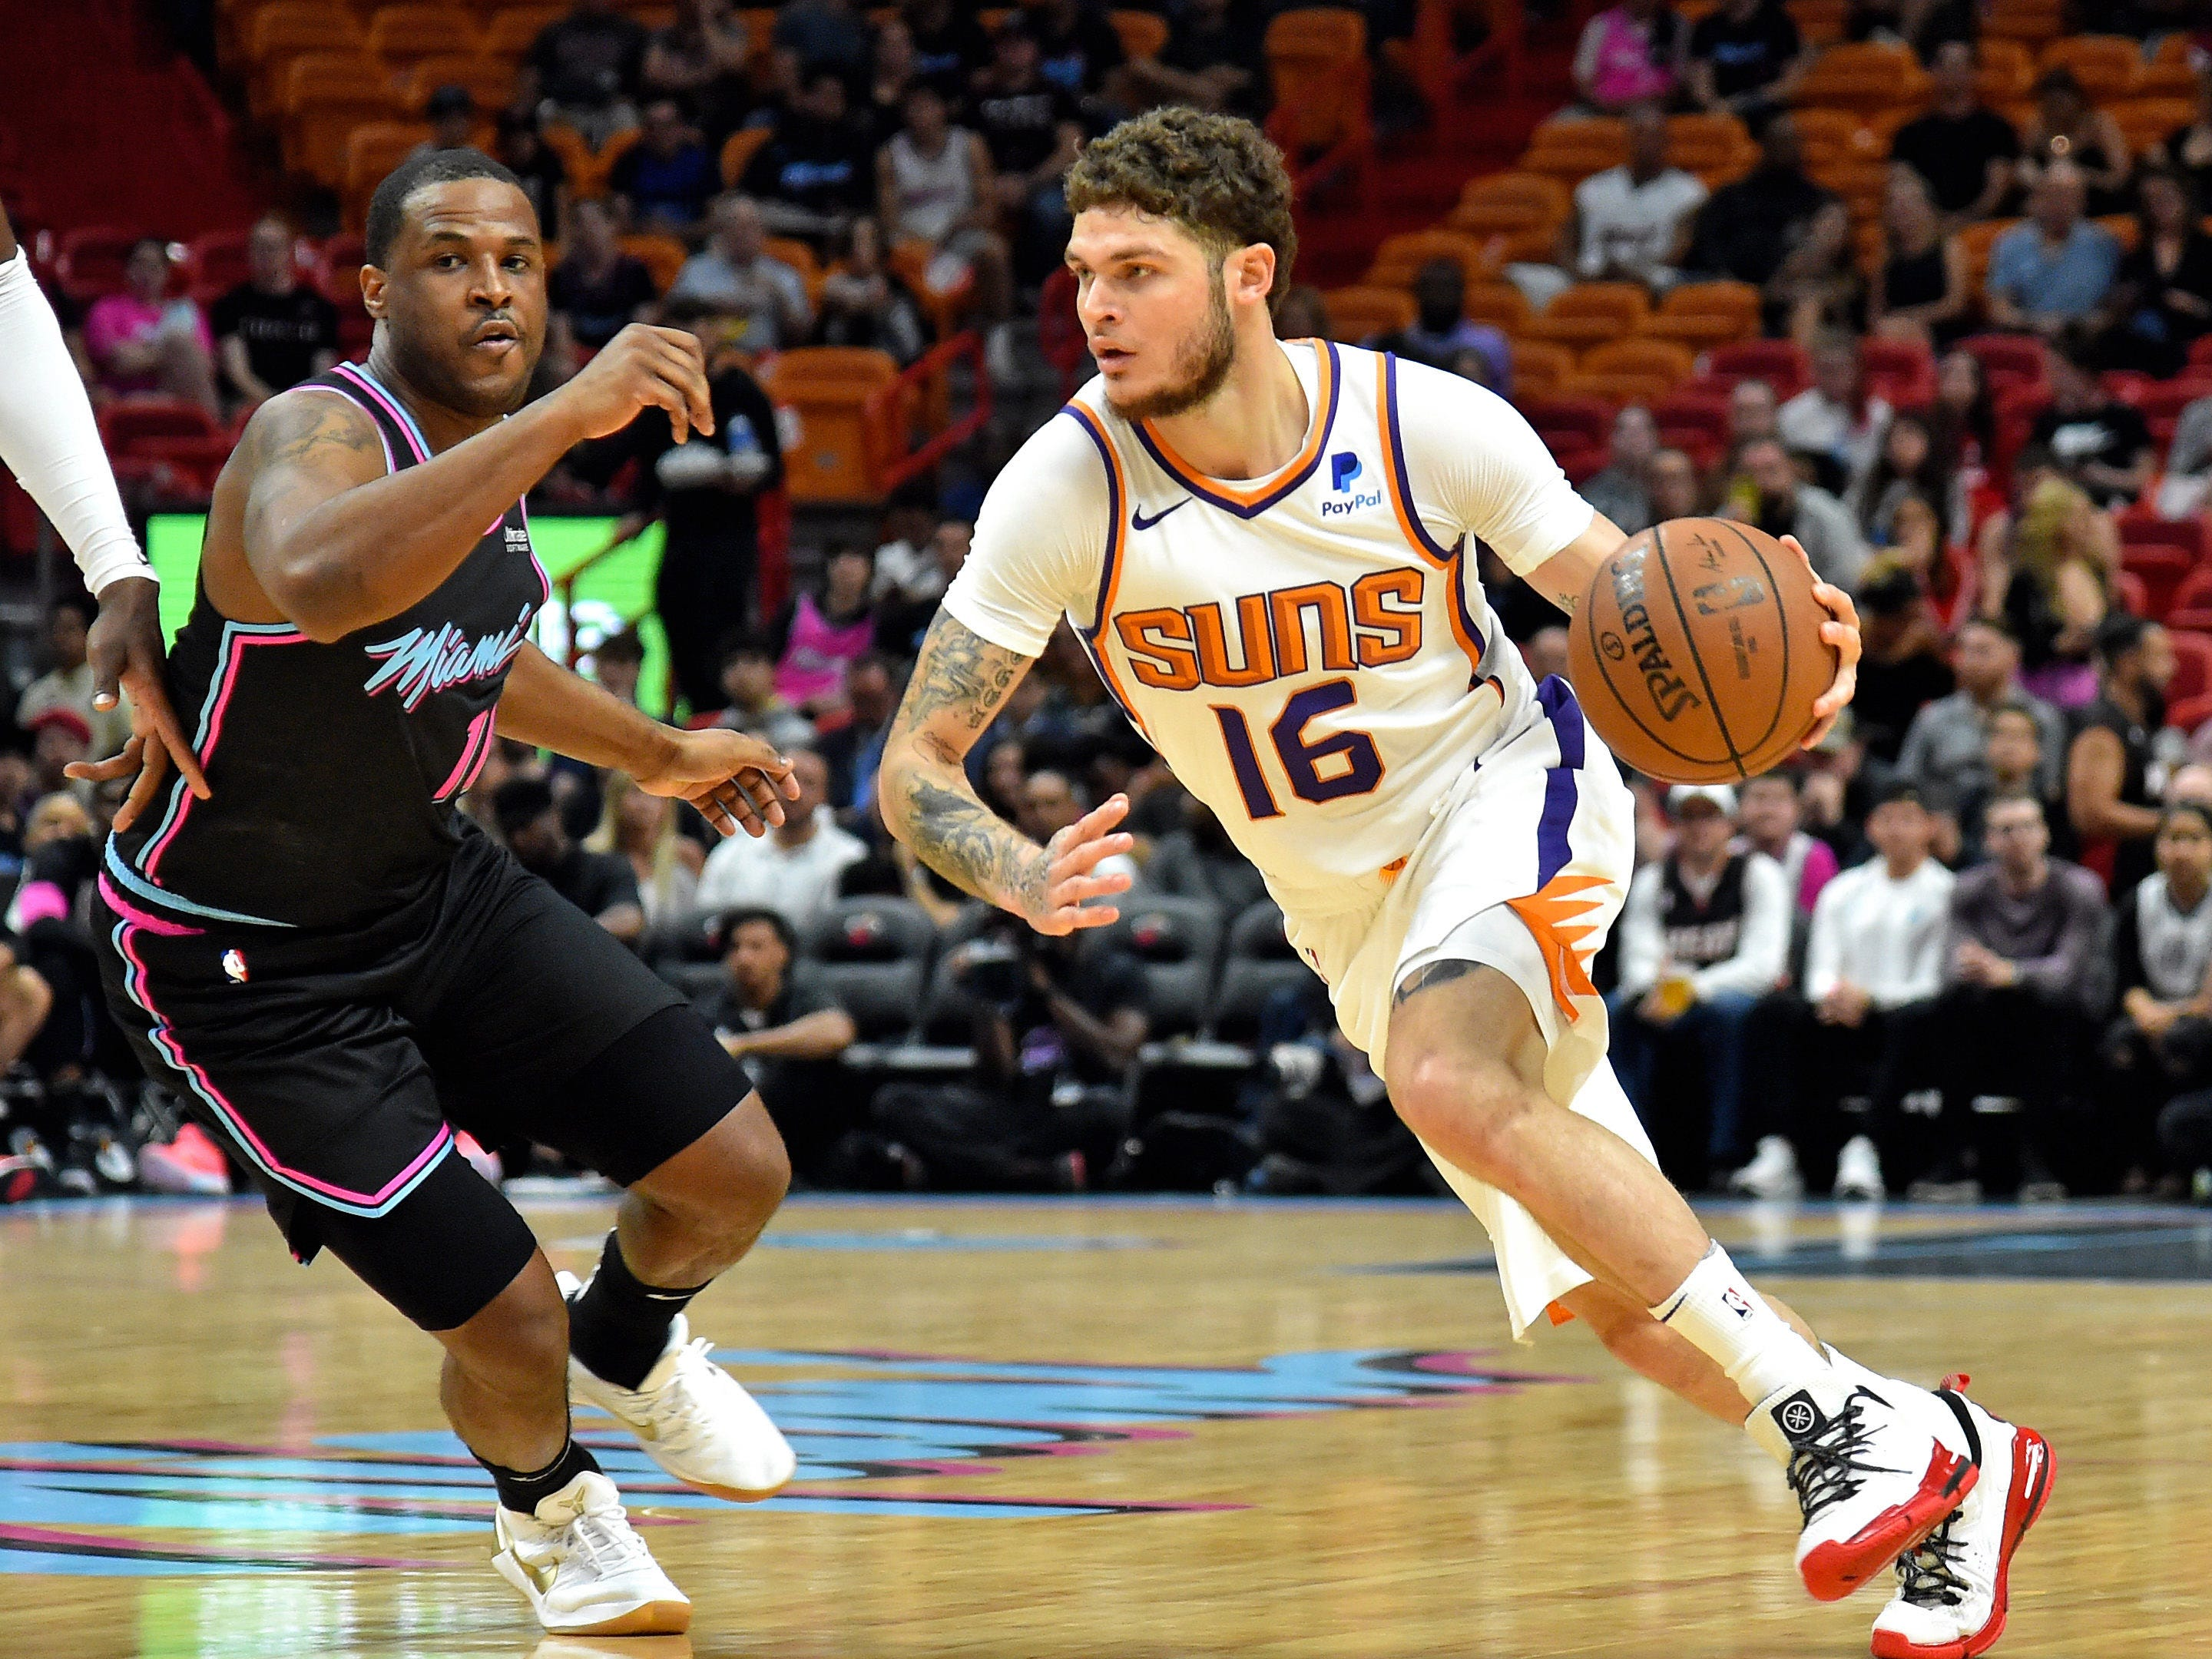 Feb 25, 2019; Miami, FL, USA; Phoenix Suns guard Tyler Johnson (16) is guarded by Miami Heat guard Dion Waiters (11) during the first half at American Airlines Arena. Mandatory Credit: Steve Mitchell-USA TODAY Sports